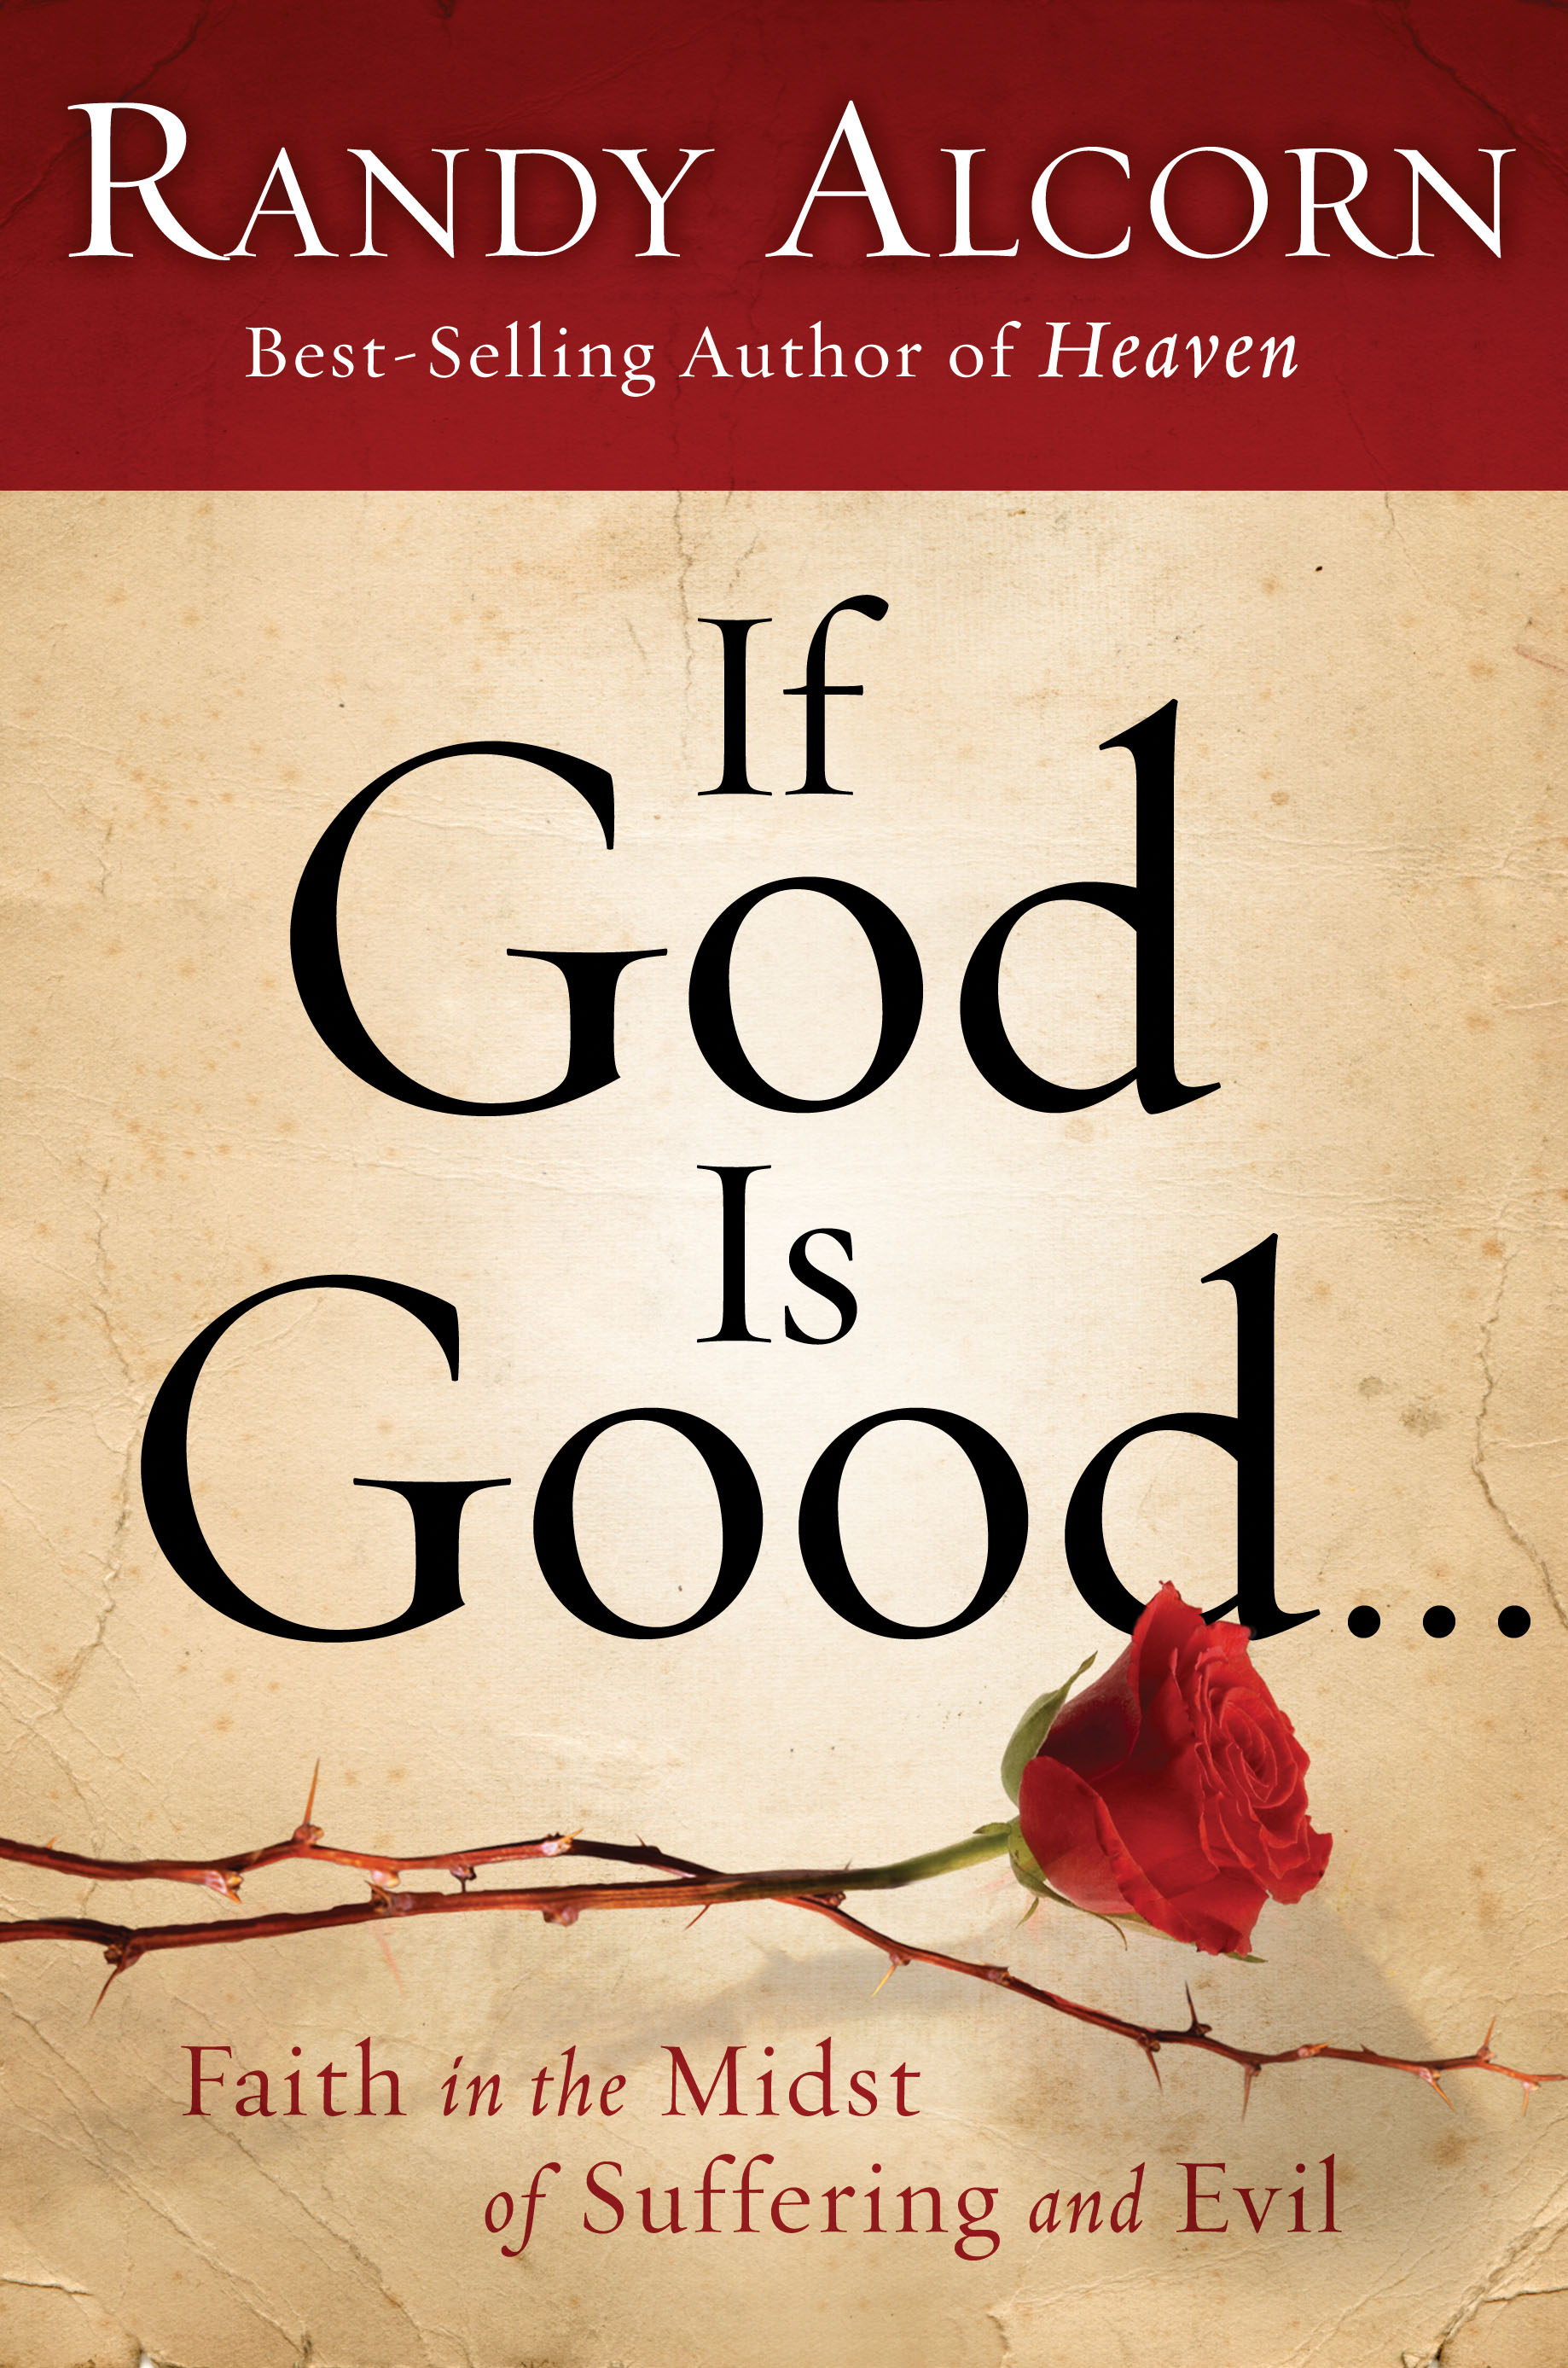 If God Is Good ...